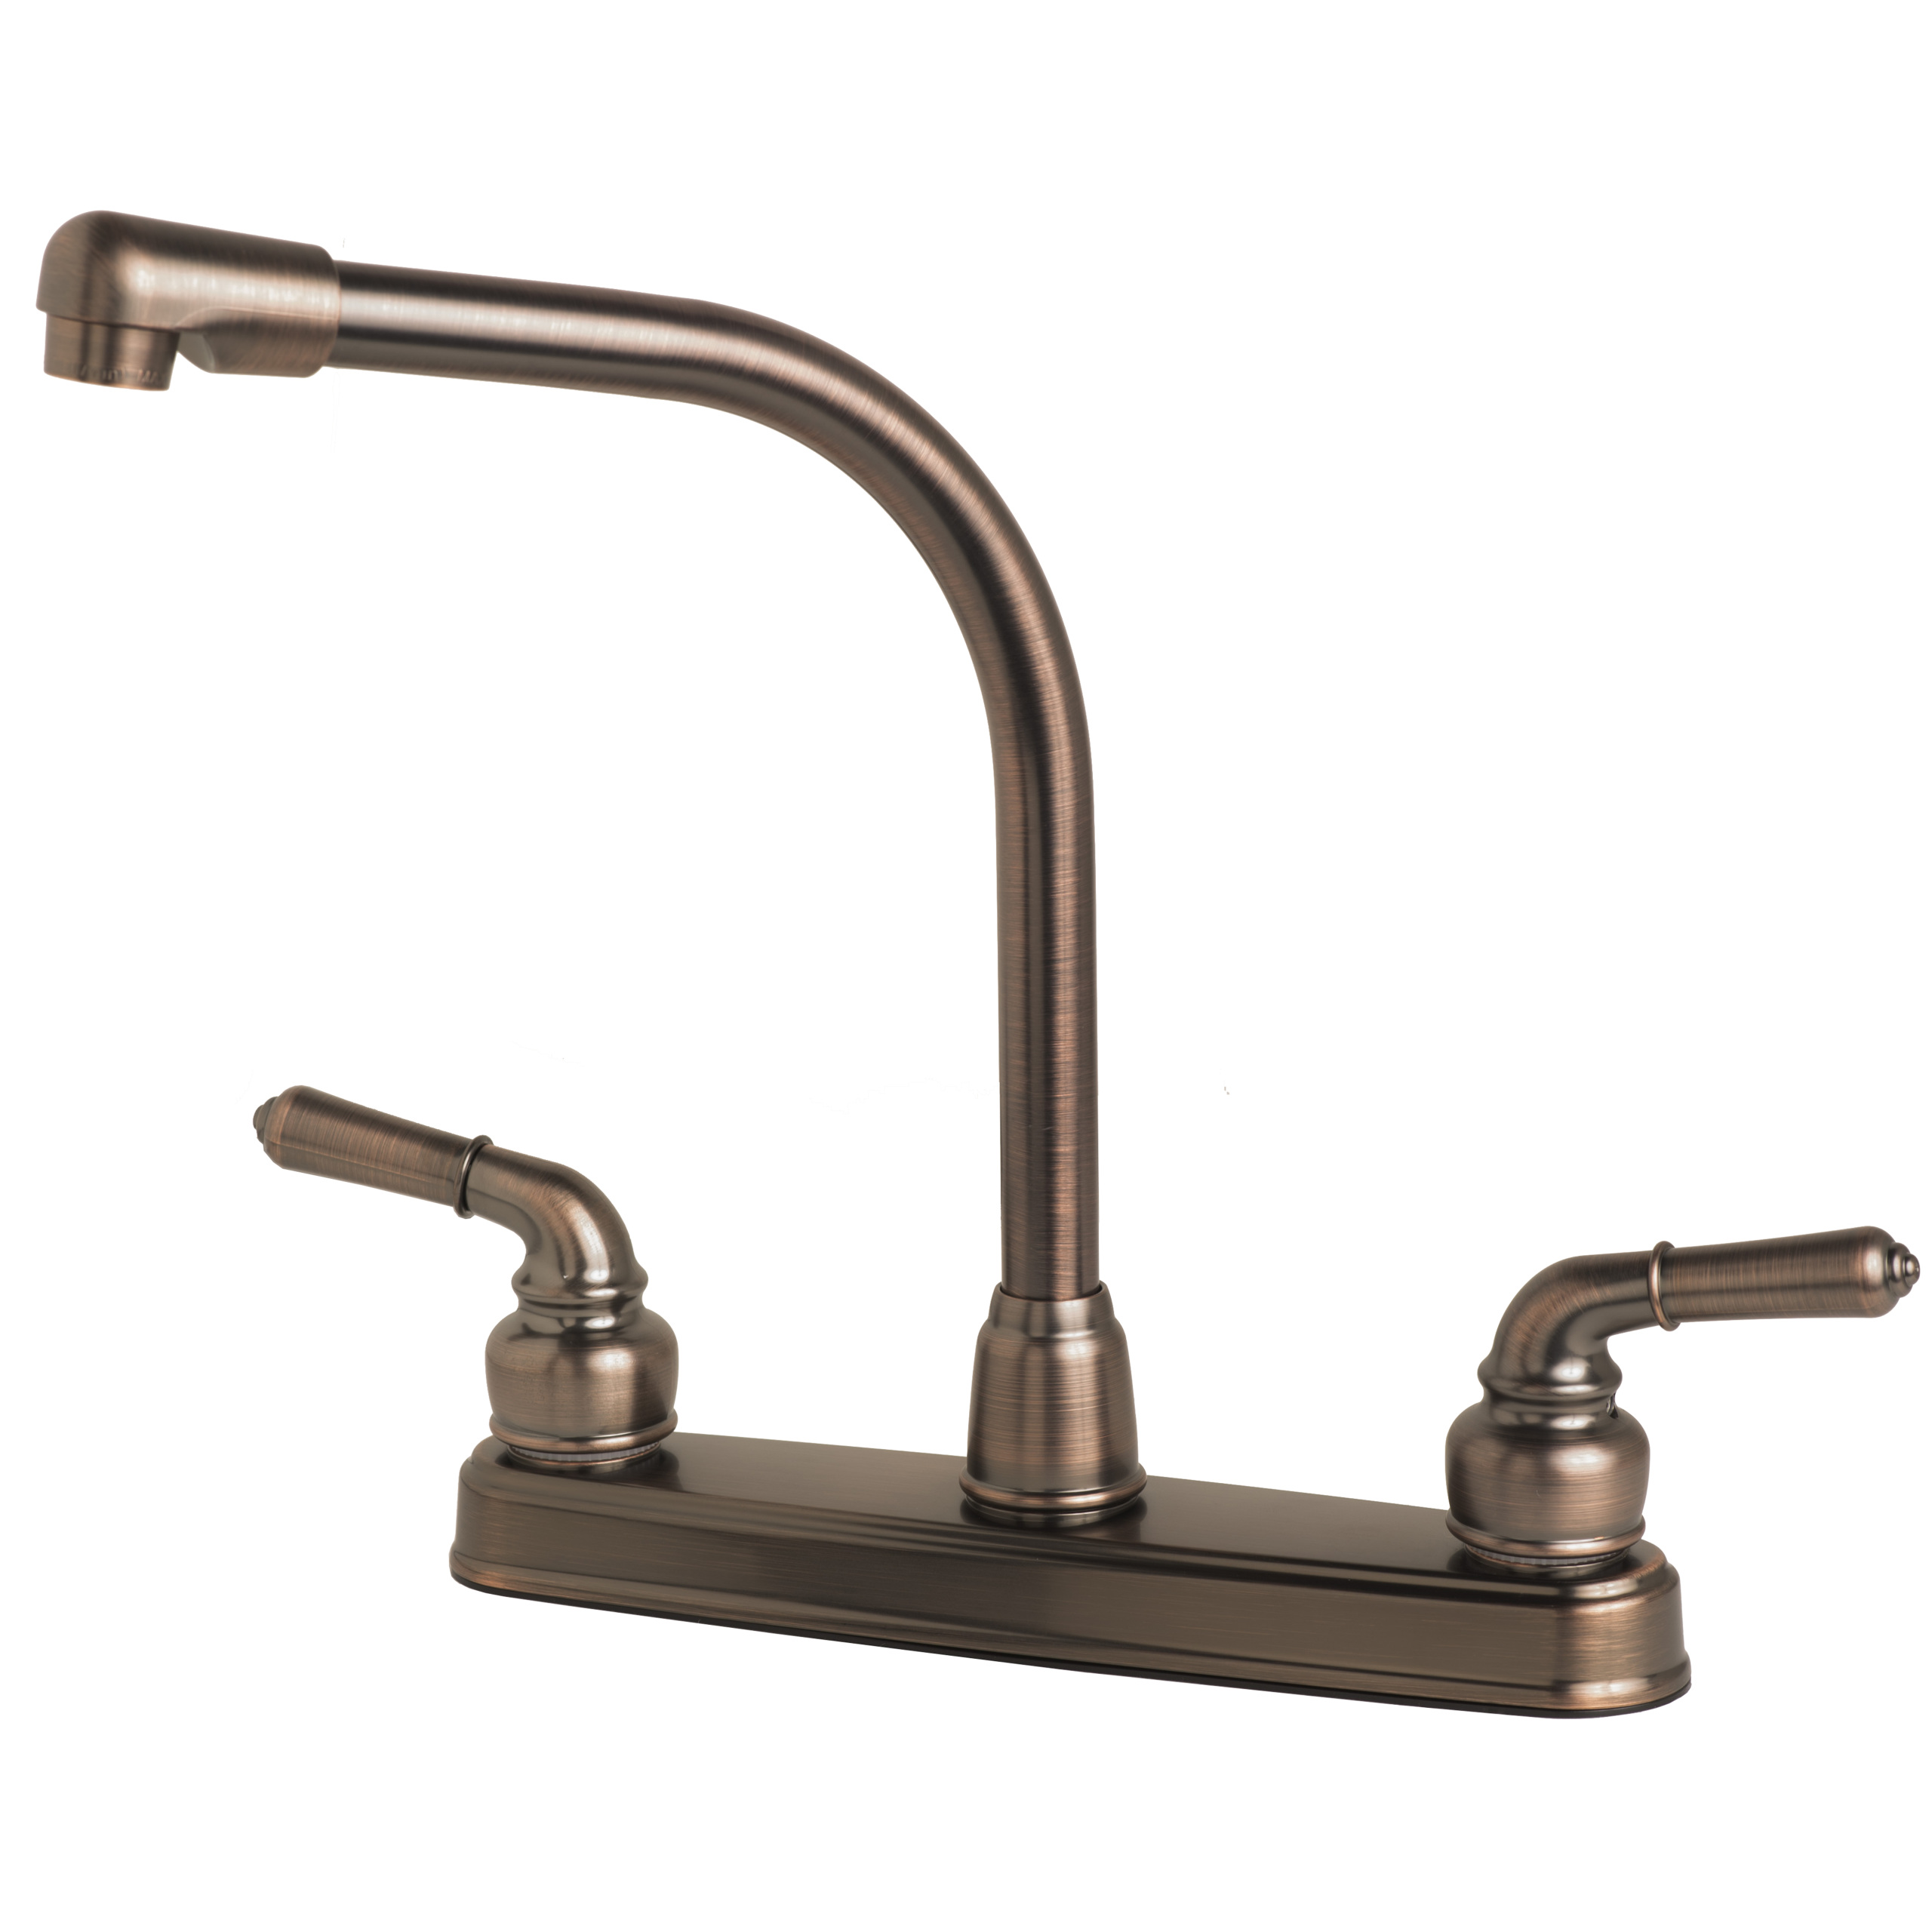 Kitchen Faucets For Mobile Homes: RV Faucet